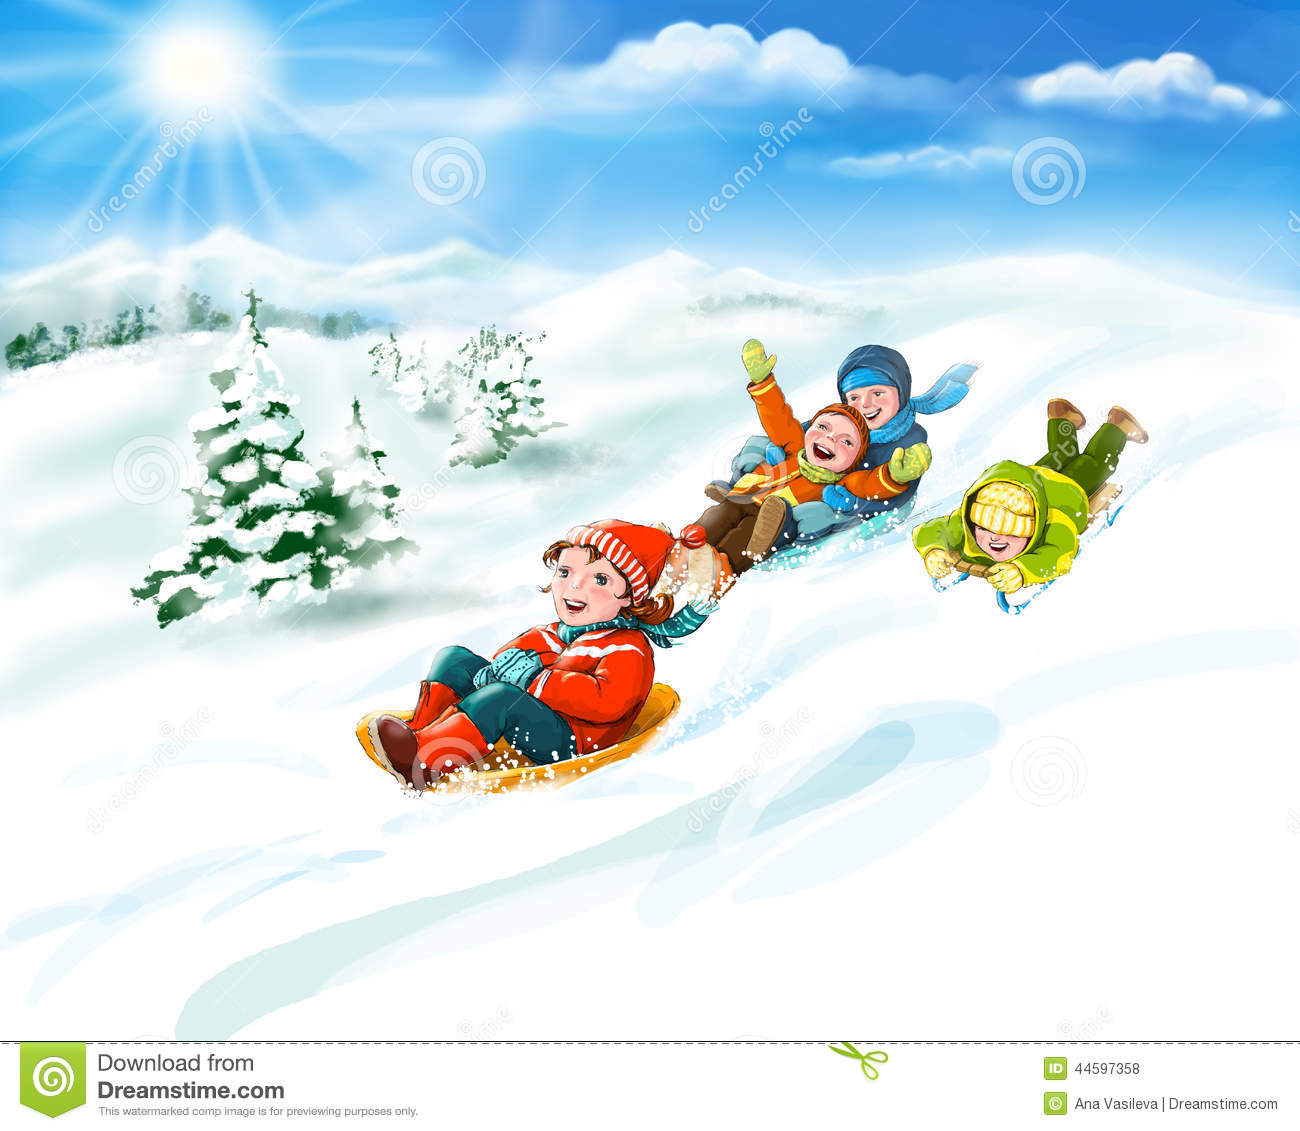 winter vacation clipart - photo #11